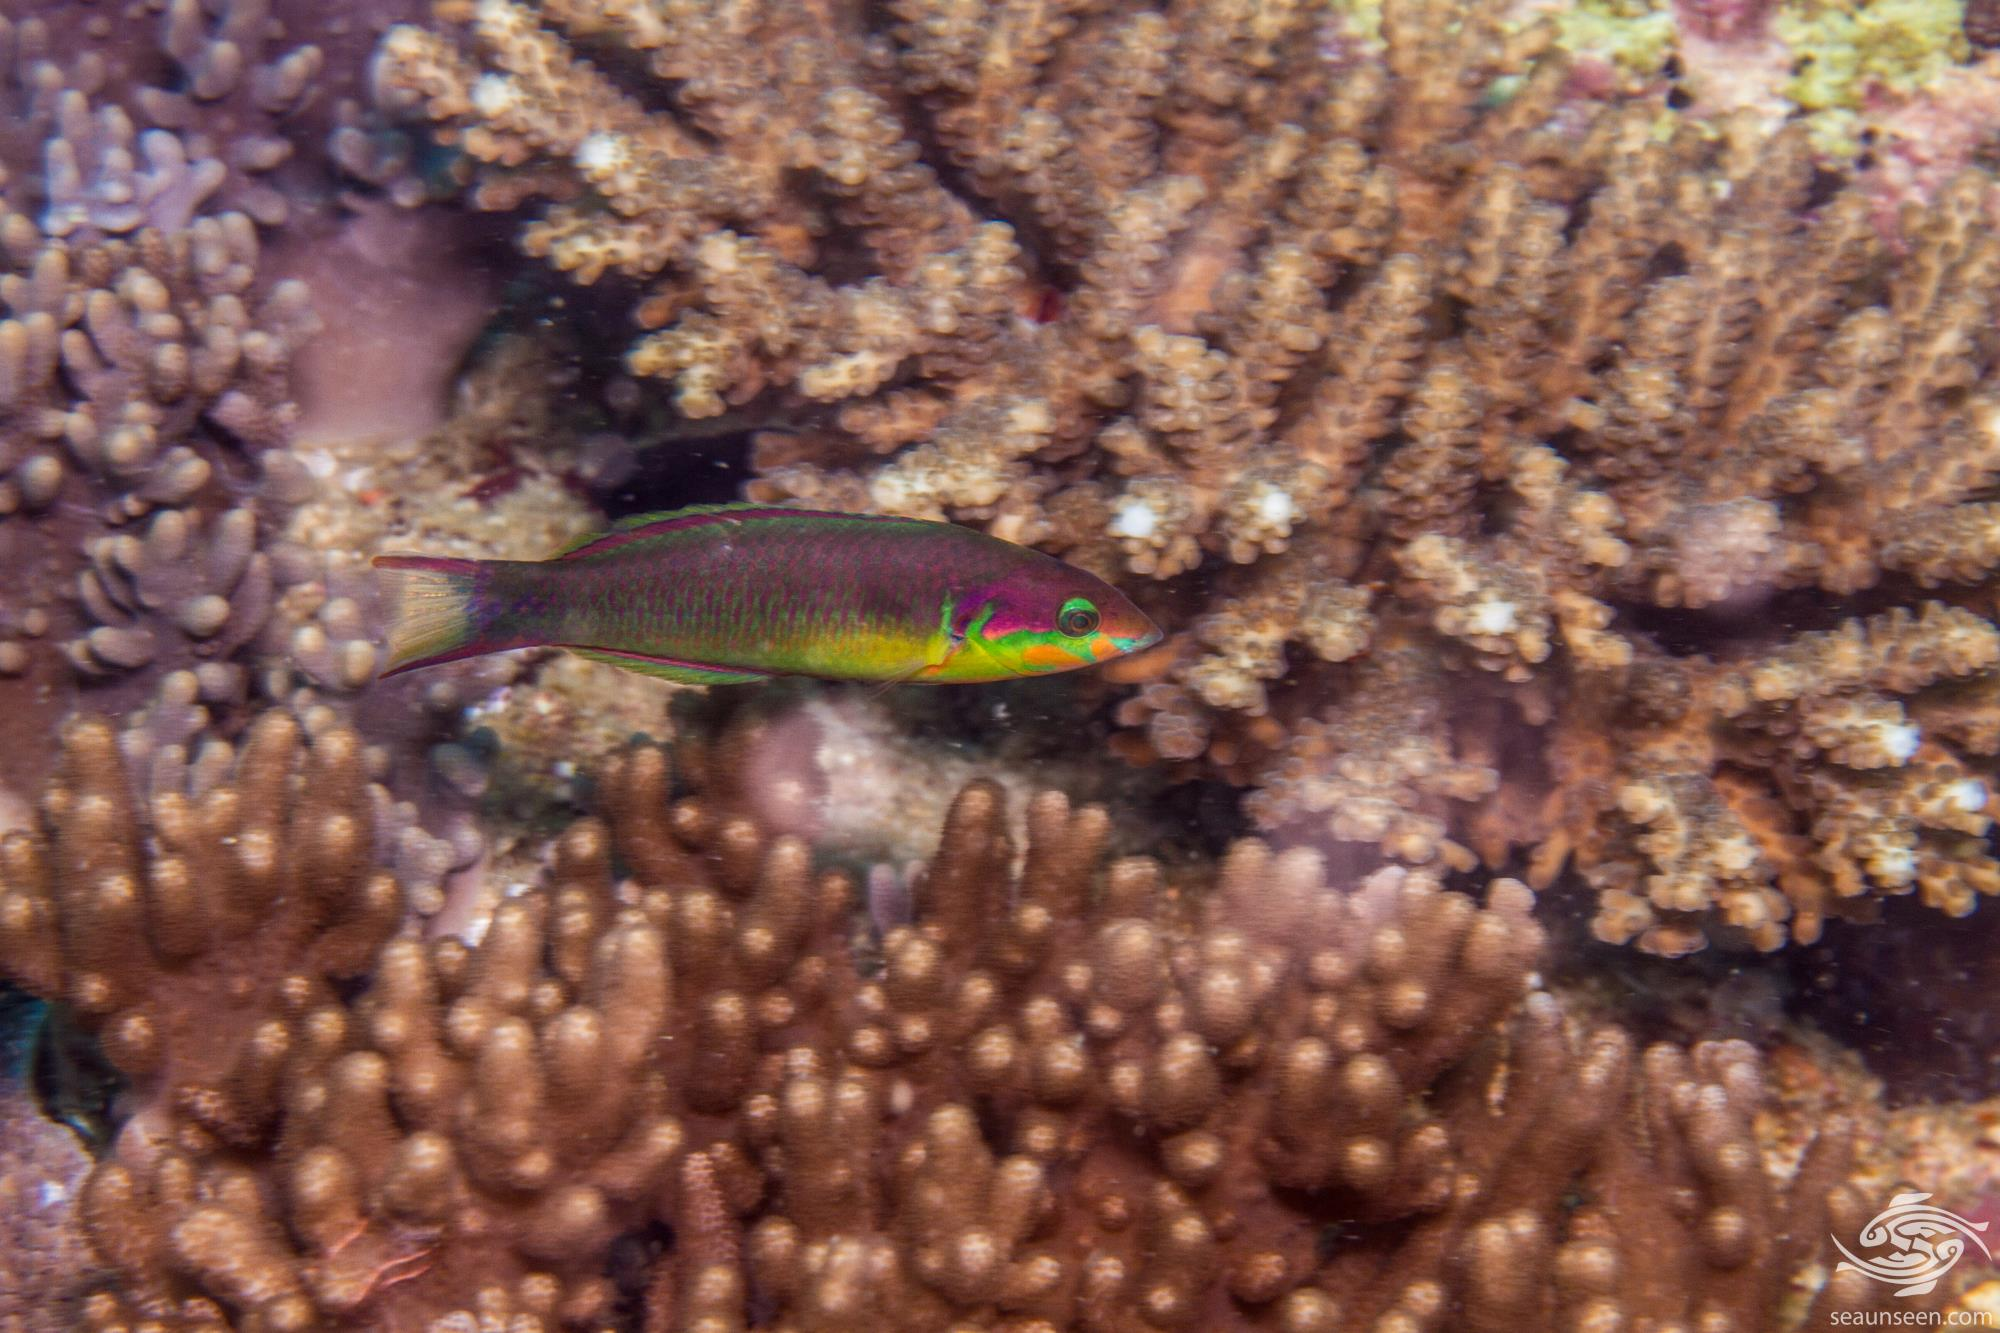 Redcheek Wrasse (Thalassoma genivittatum) is also known as the Dolphin wrasse